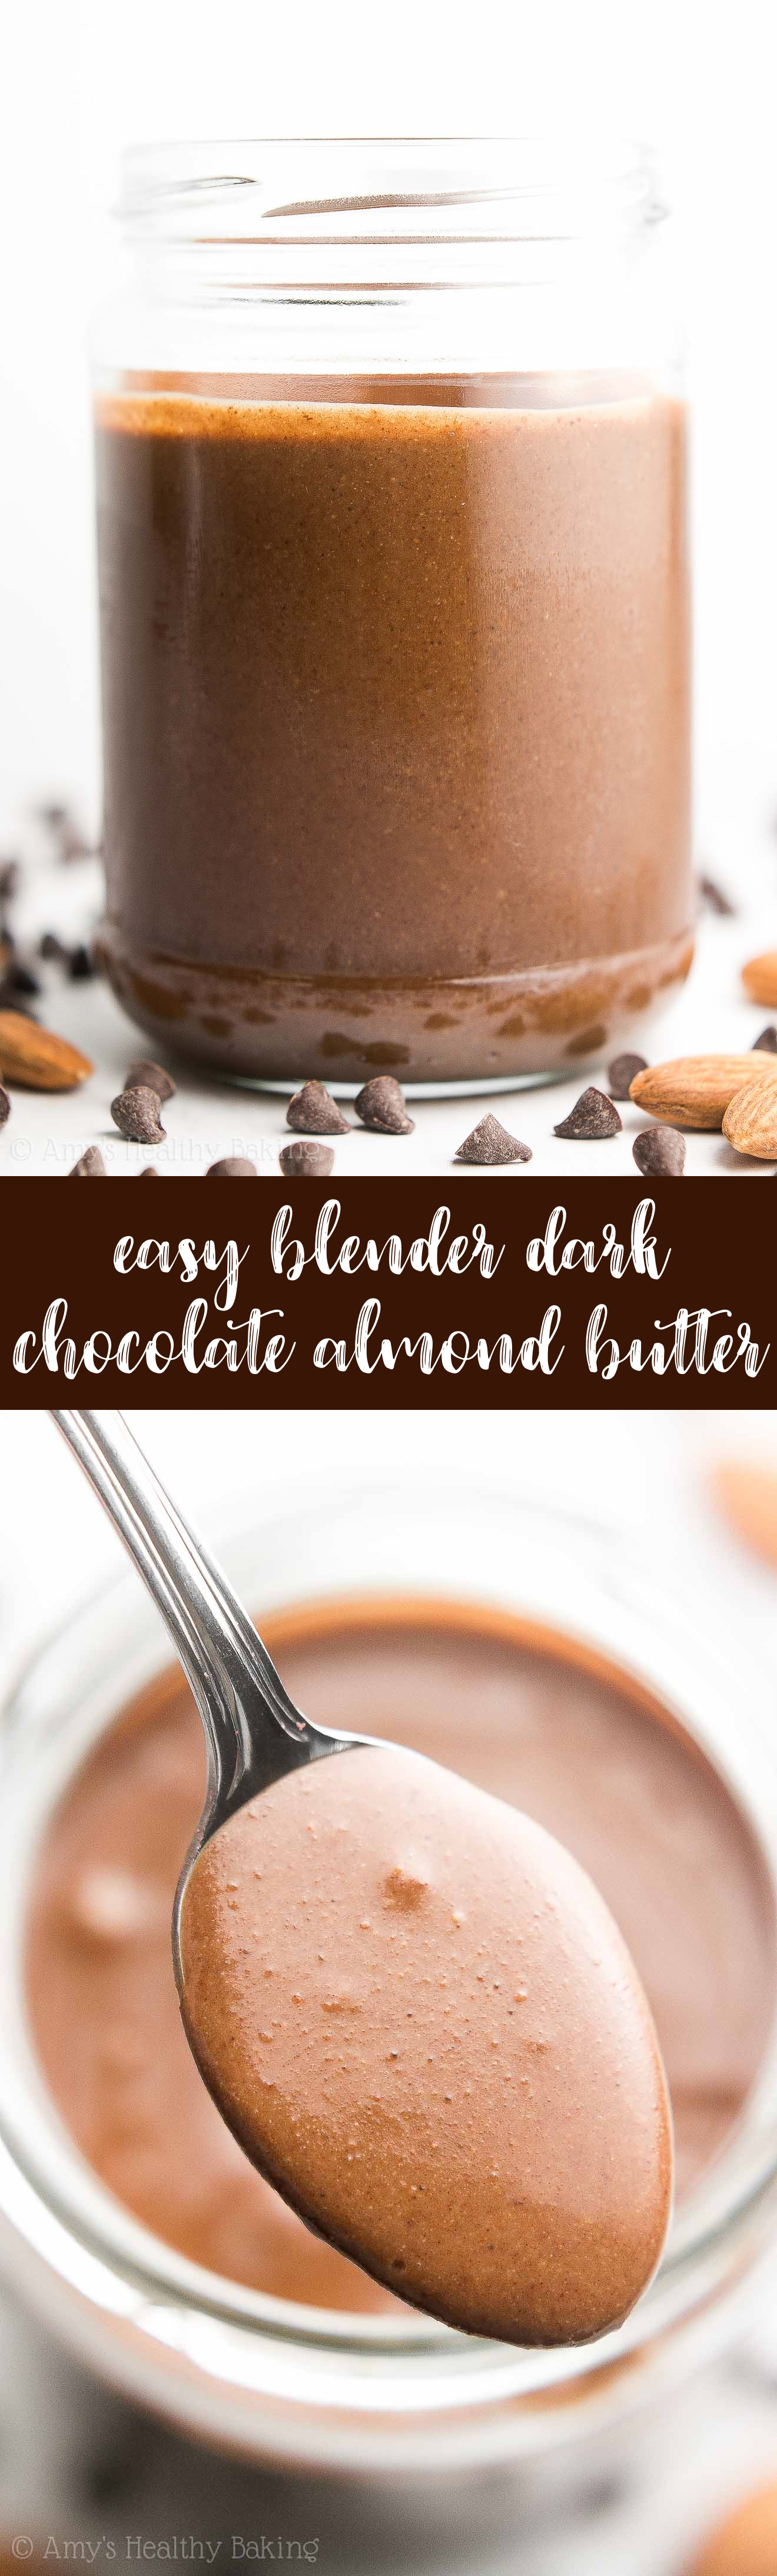 homemade dark chocolate almond butter made in a blender